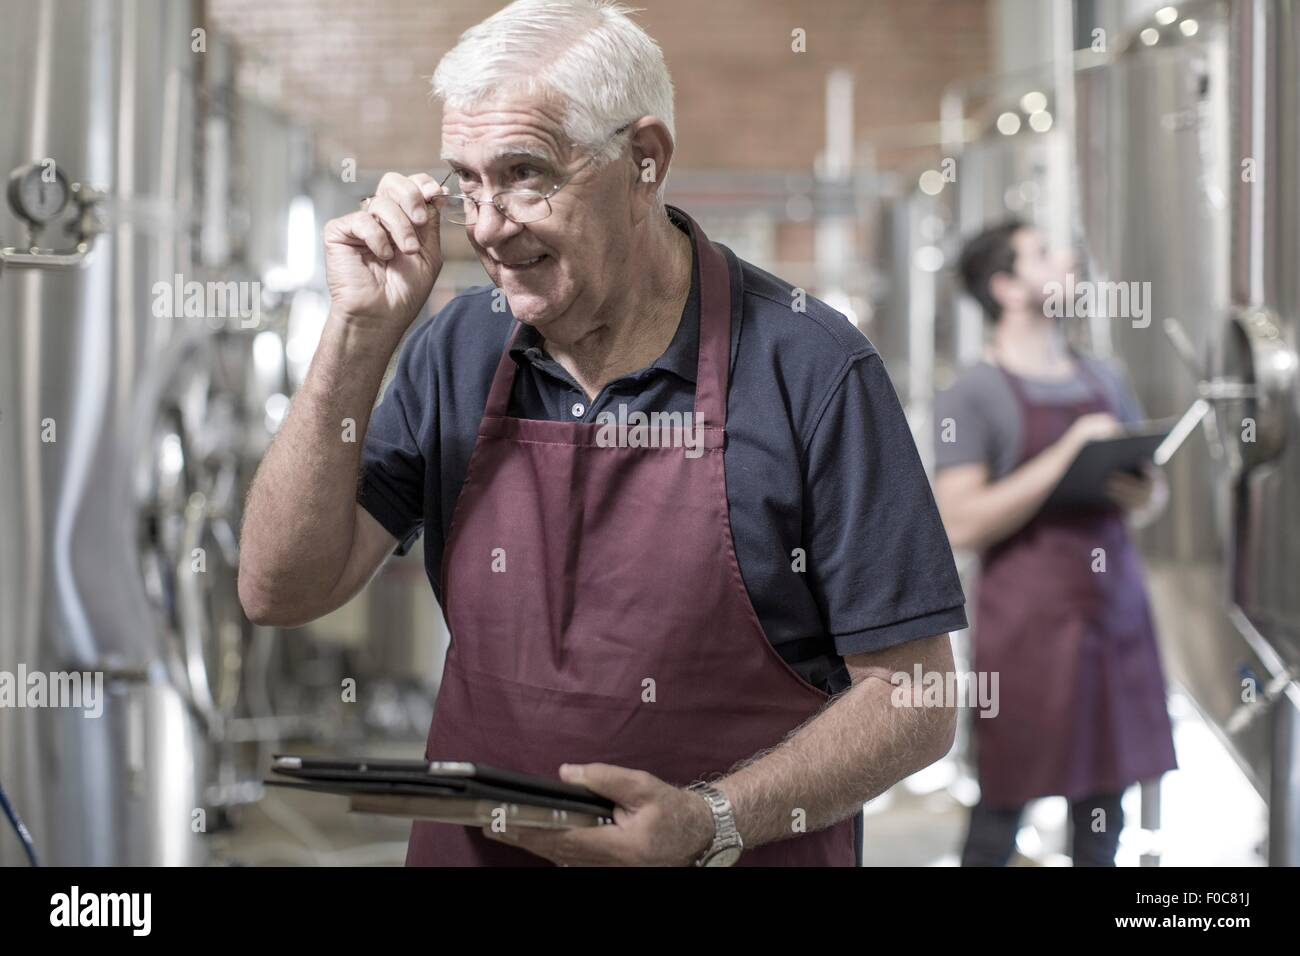 Brewers in brewery standing next to stainless steel tanks - Stock Image